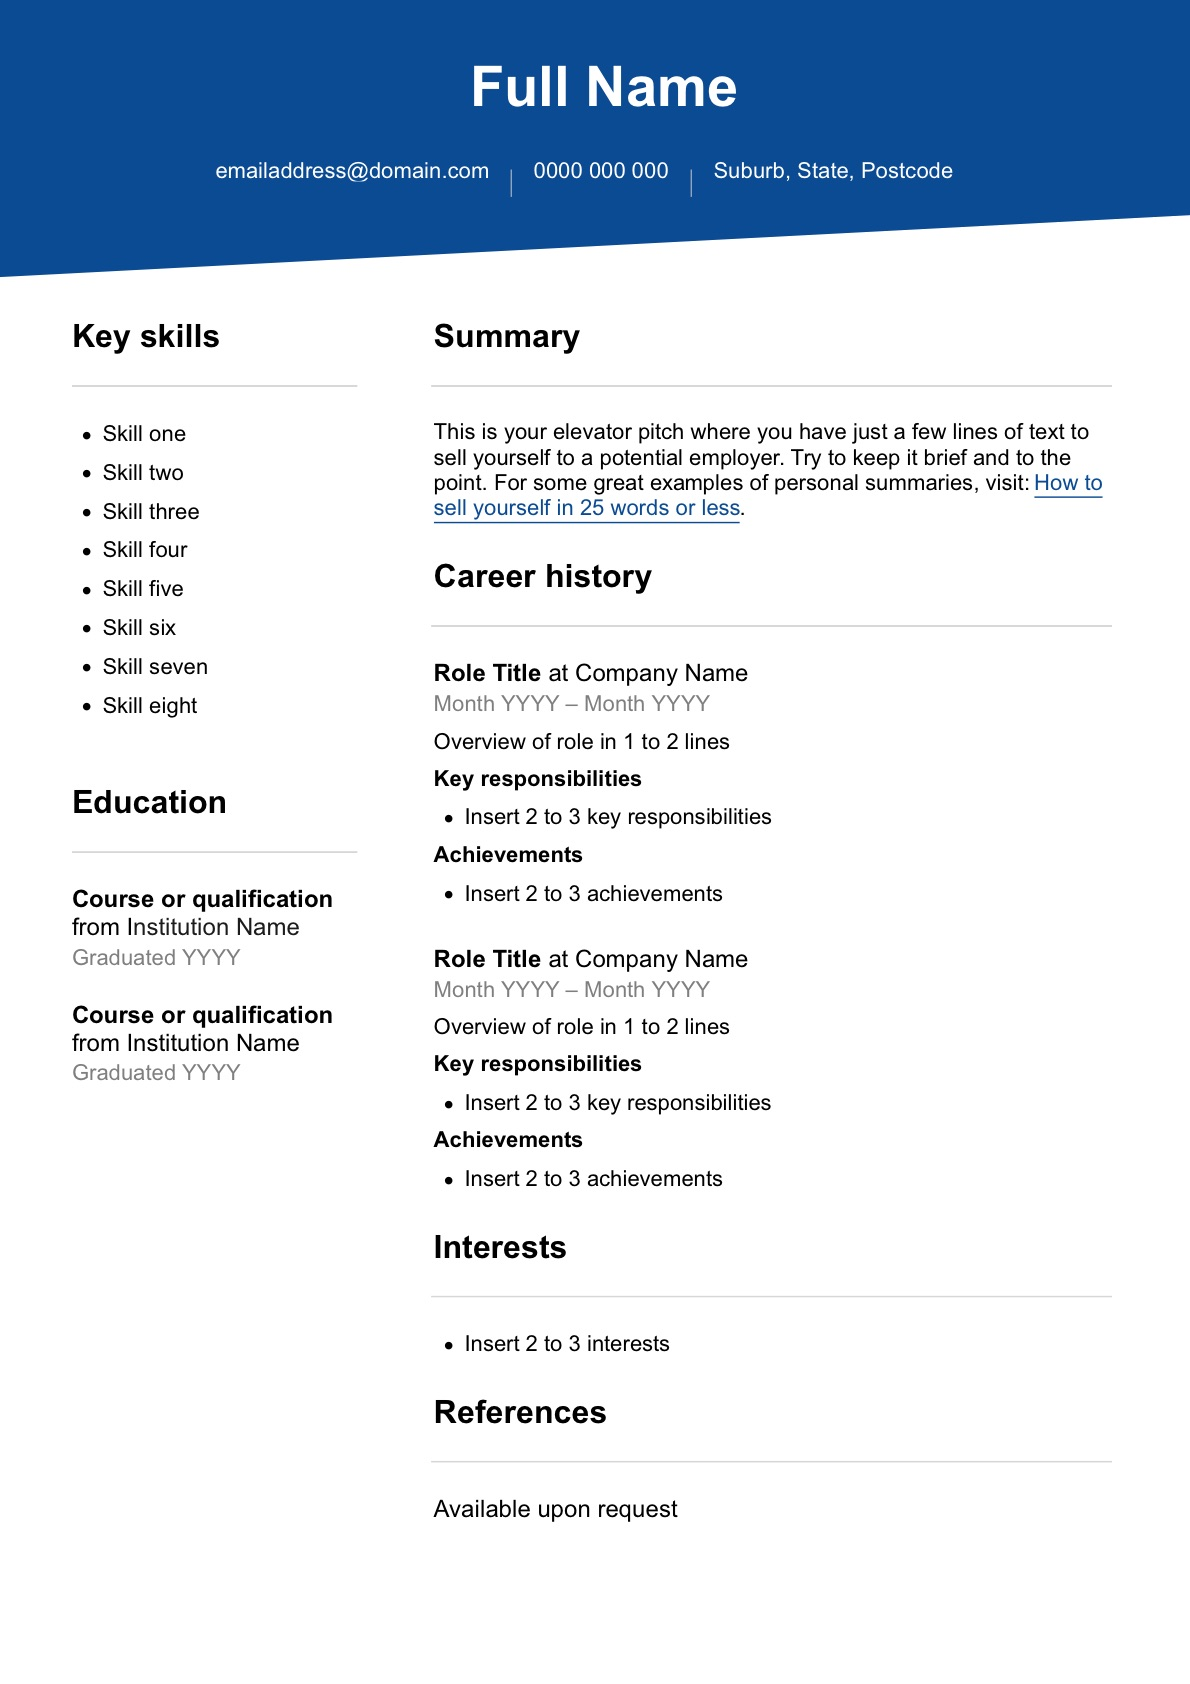 Resume Document Template from cdn.seeklearning.com.au